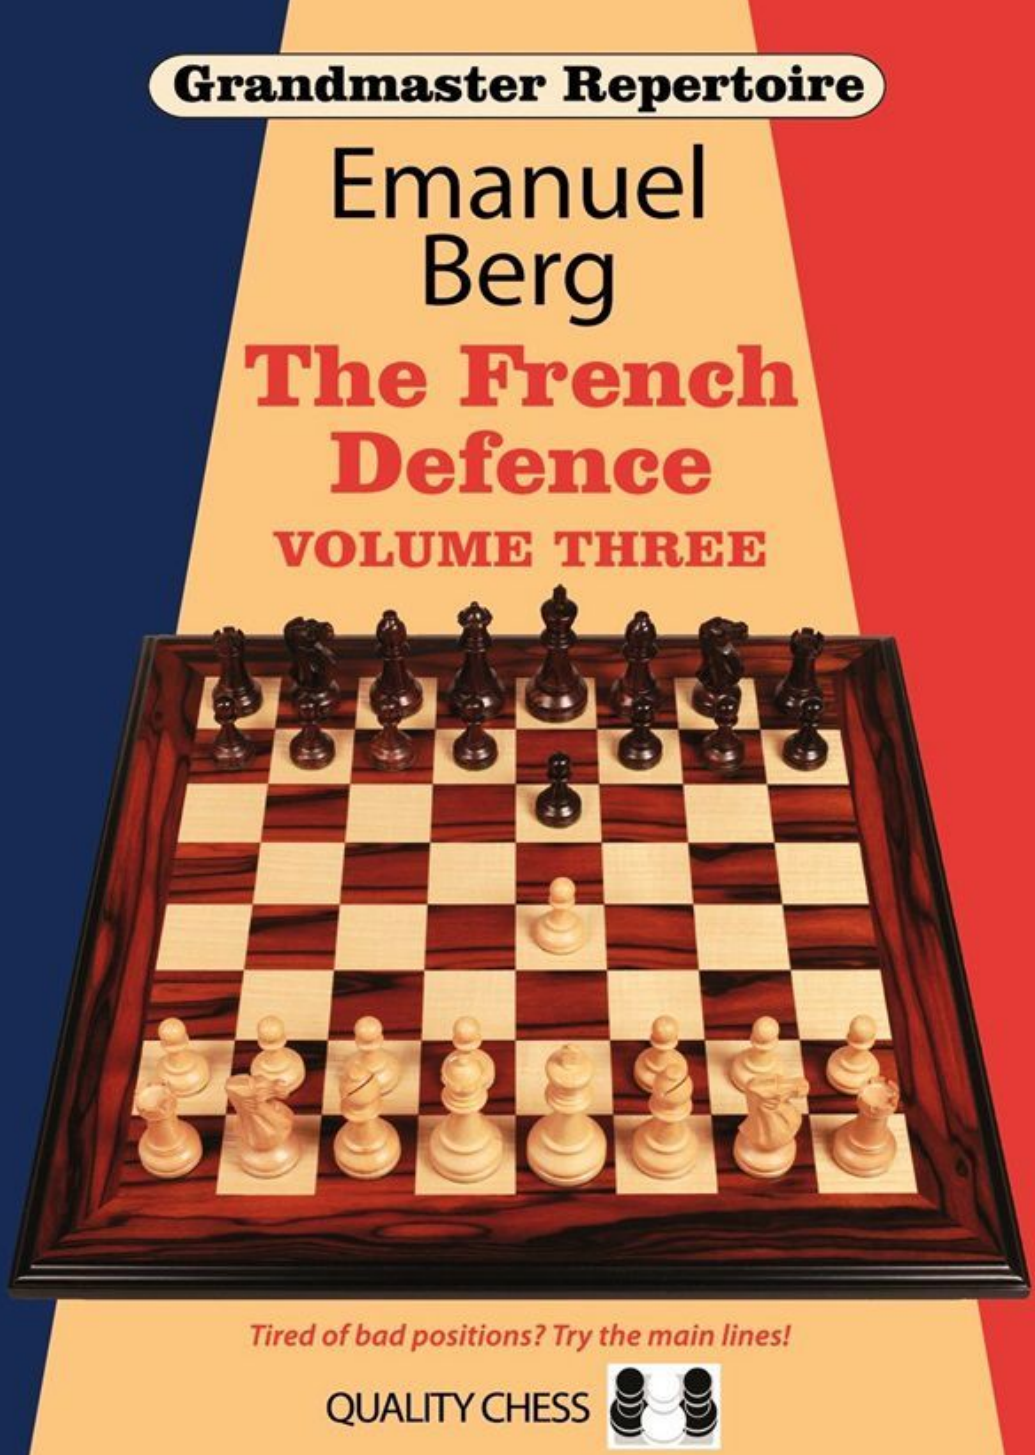 The French Defence Vol 3